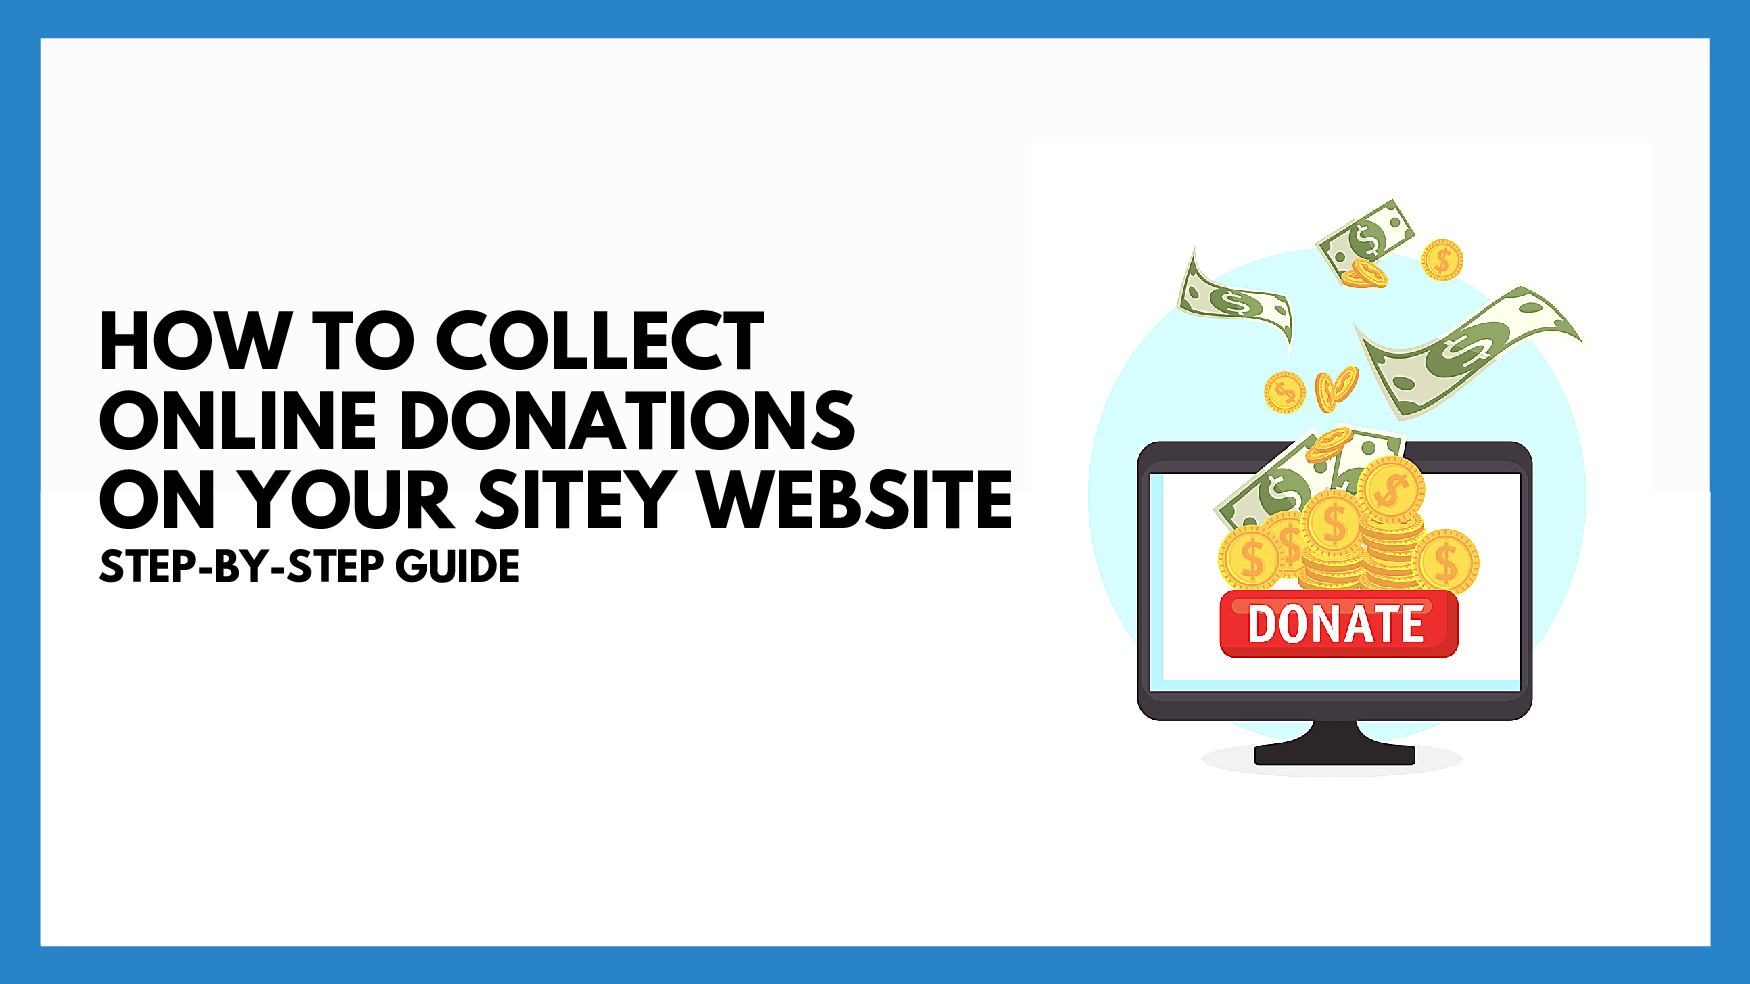 How To Collect Online Donations On Sitey Website